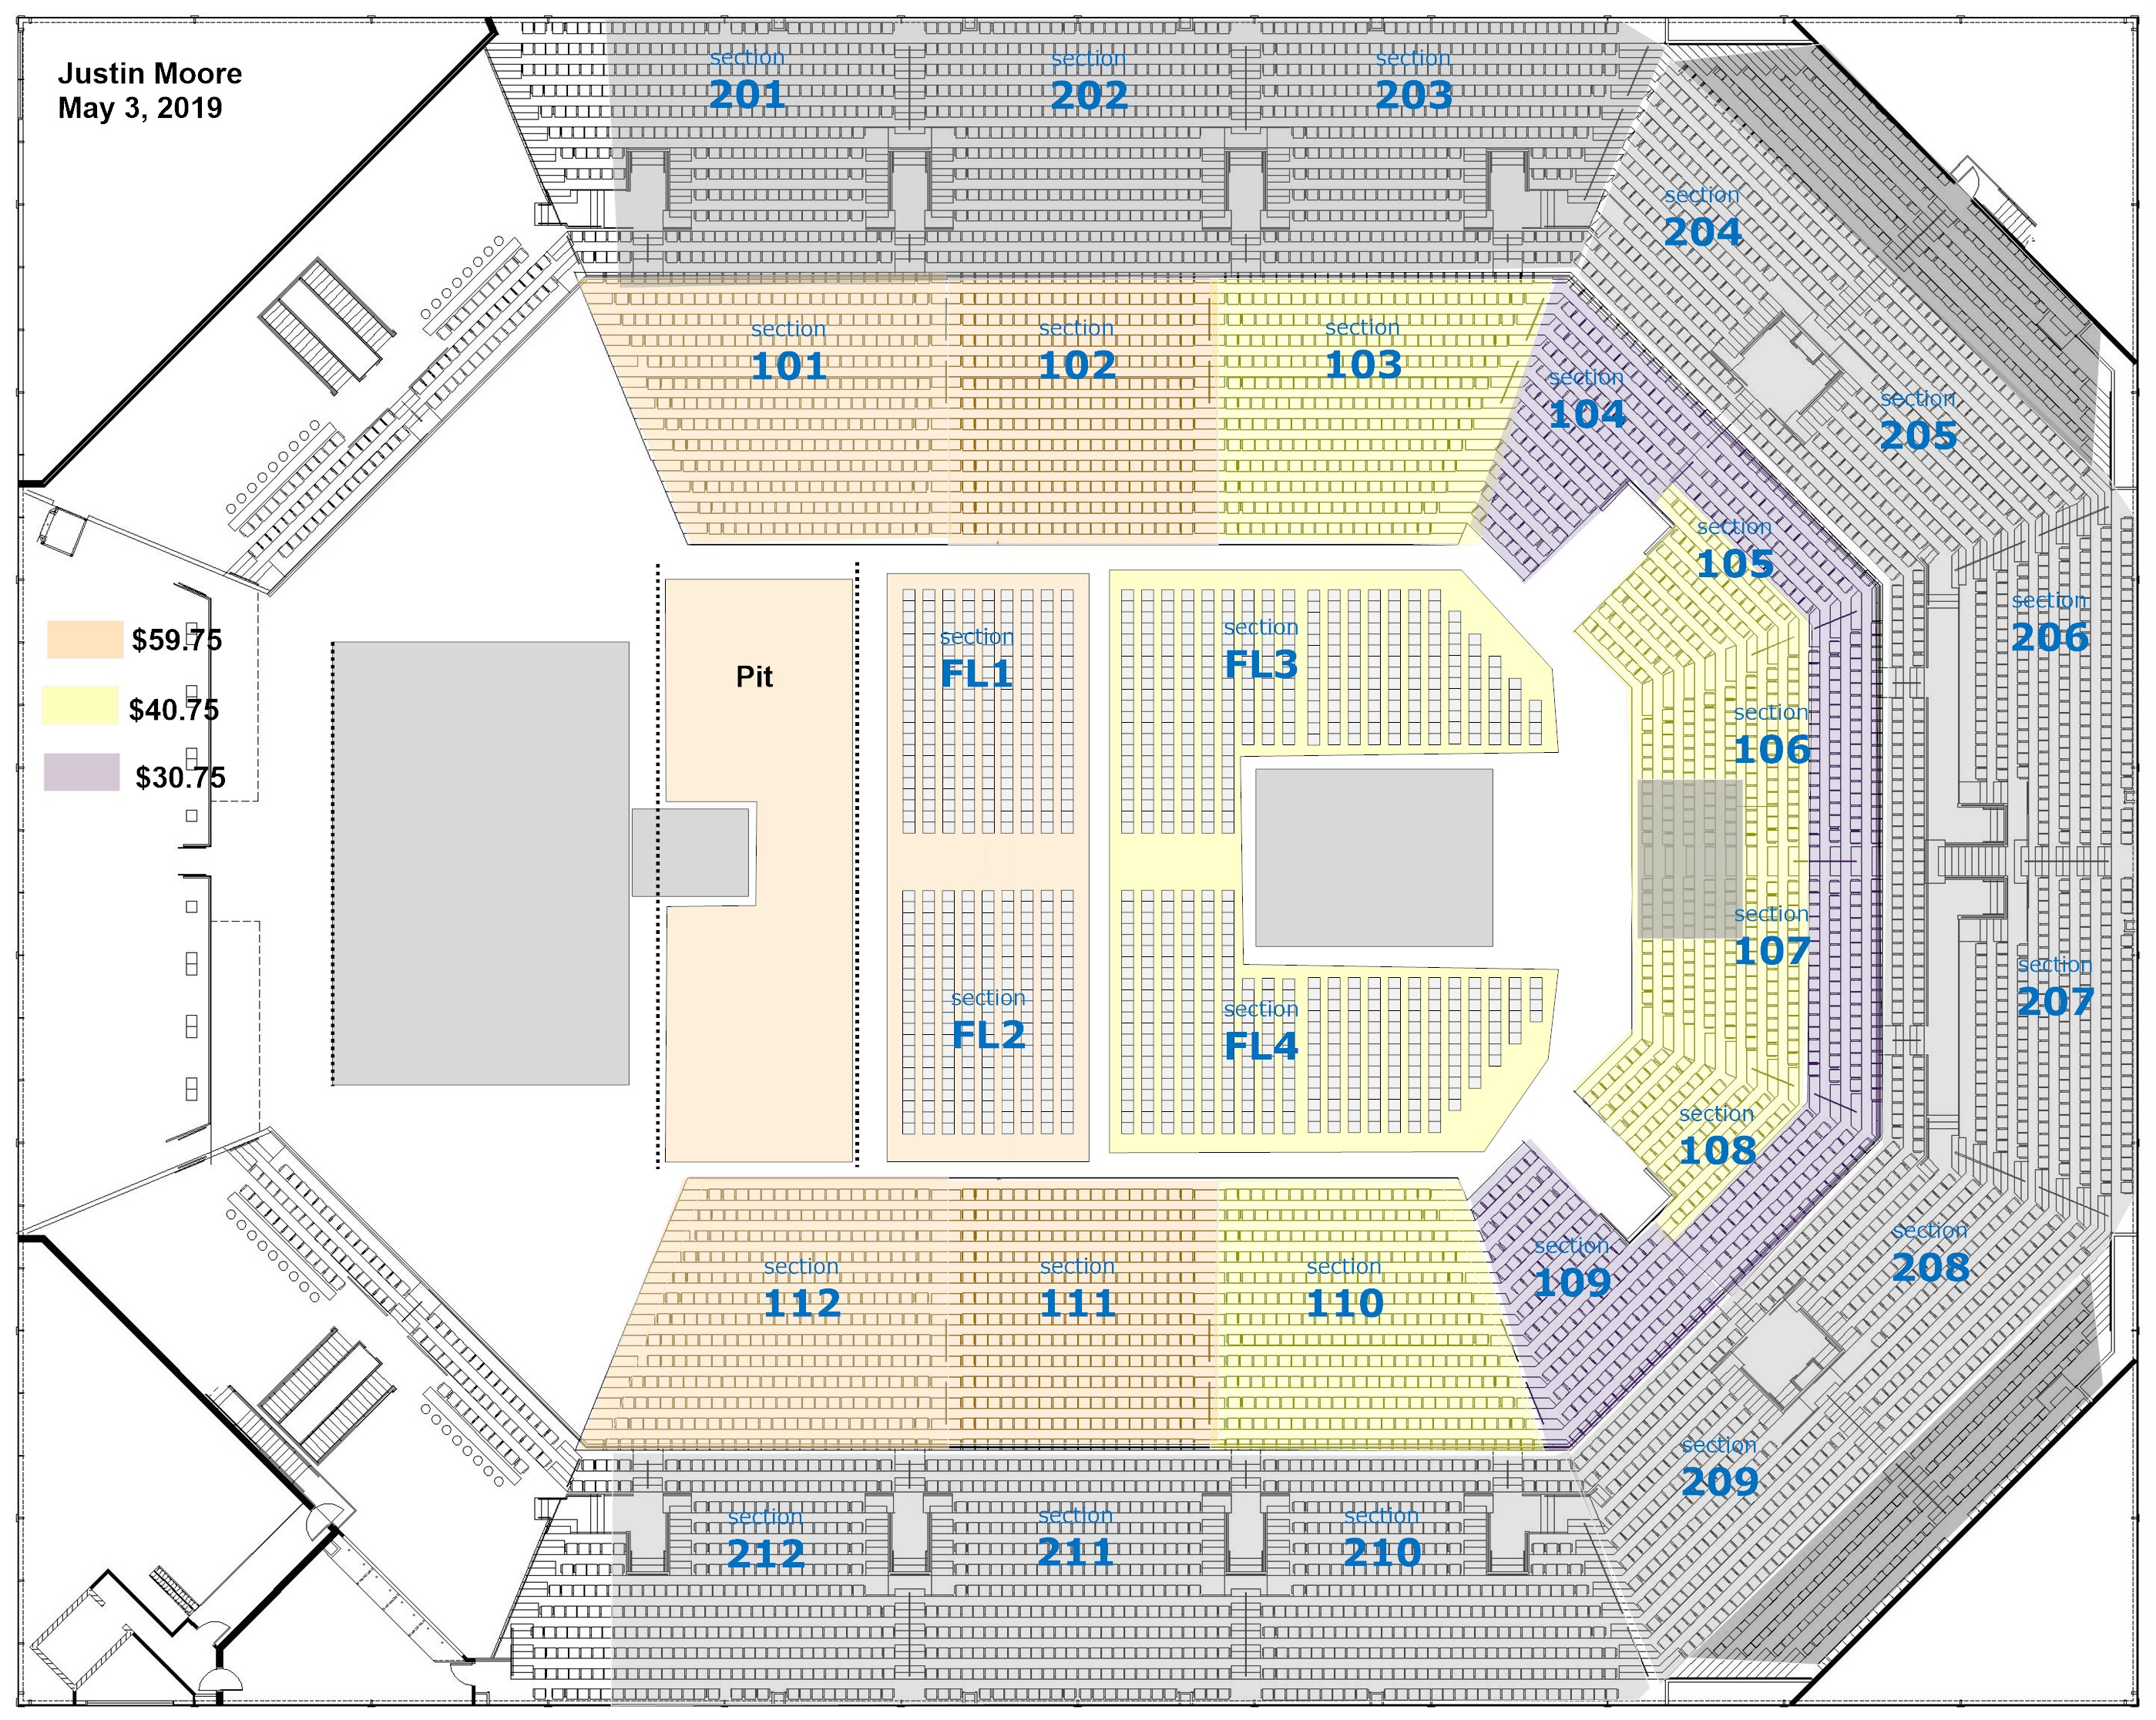 Justin Moore Seating Chart